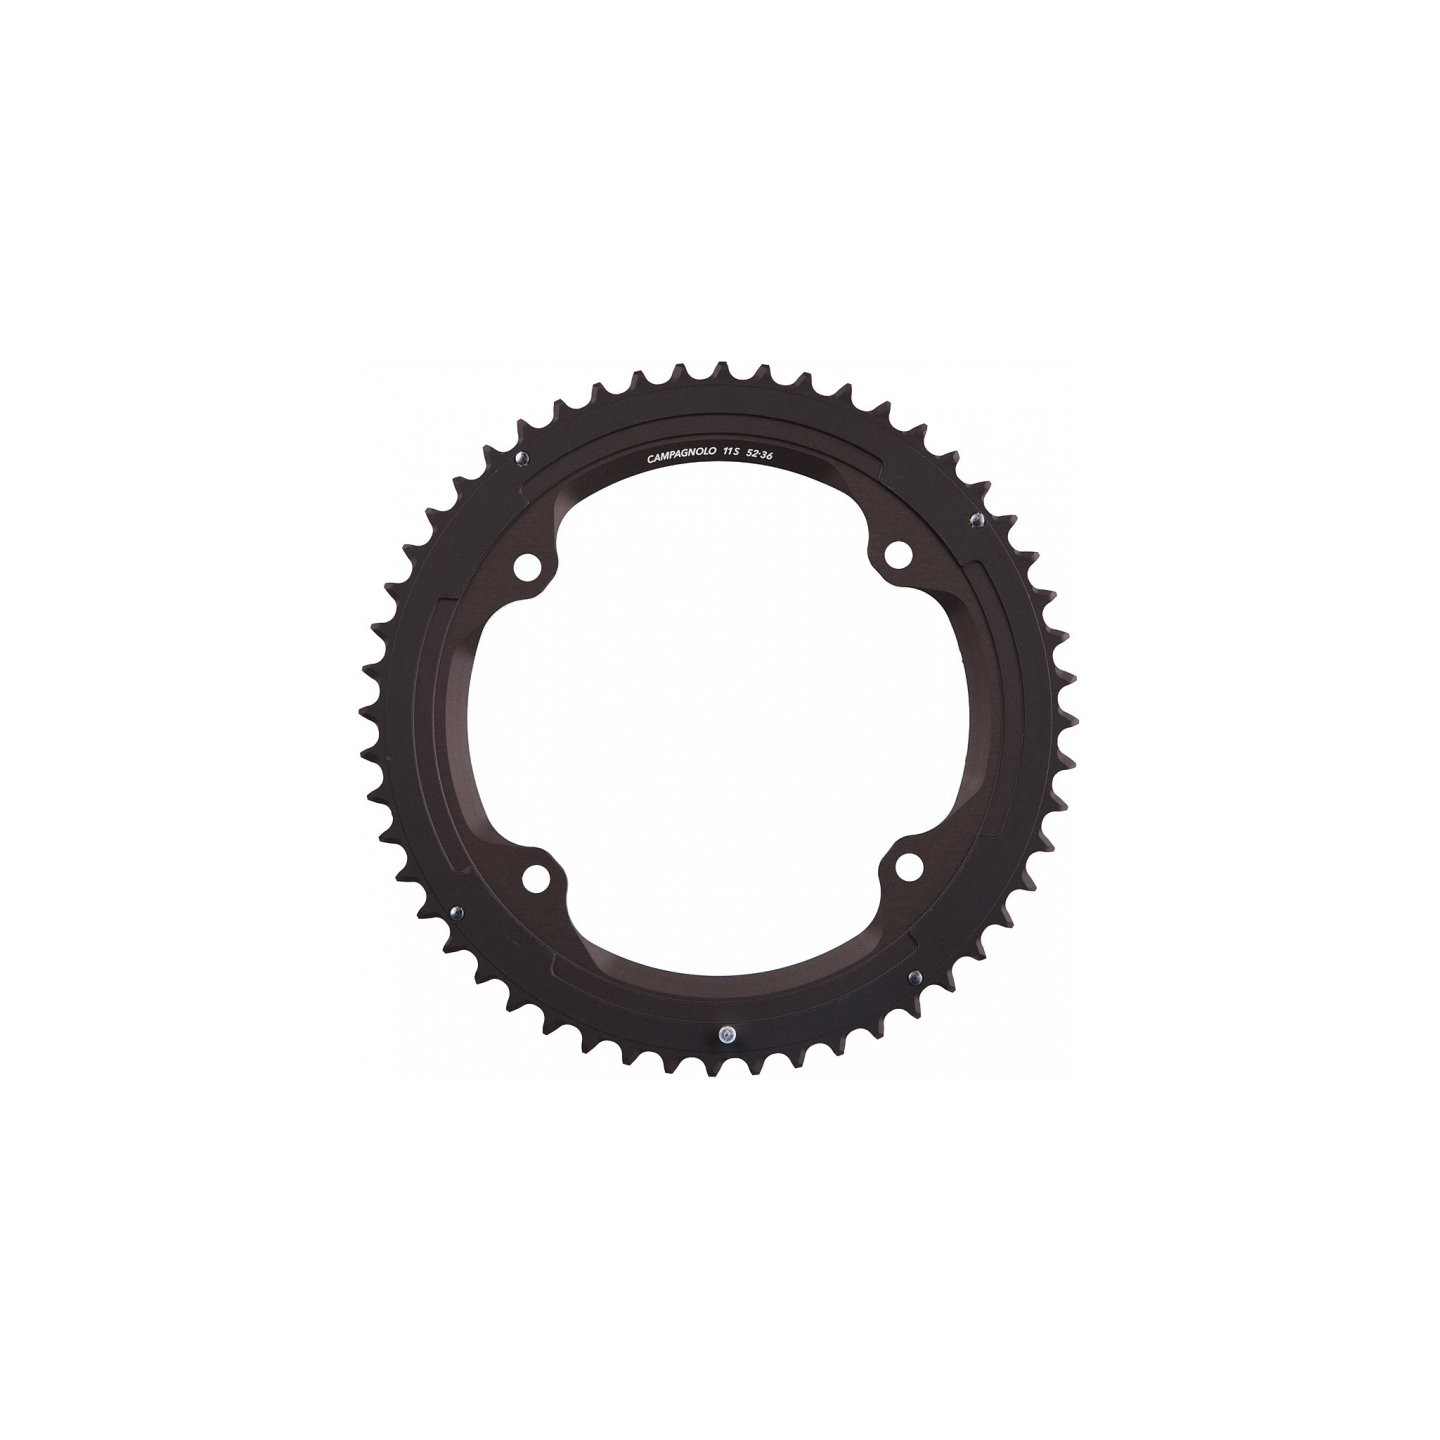 Campagnolo Φύλλο Δισκοβραχίονα SR/RE/CH 52T 11sp